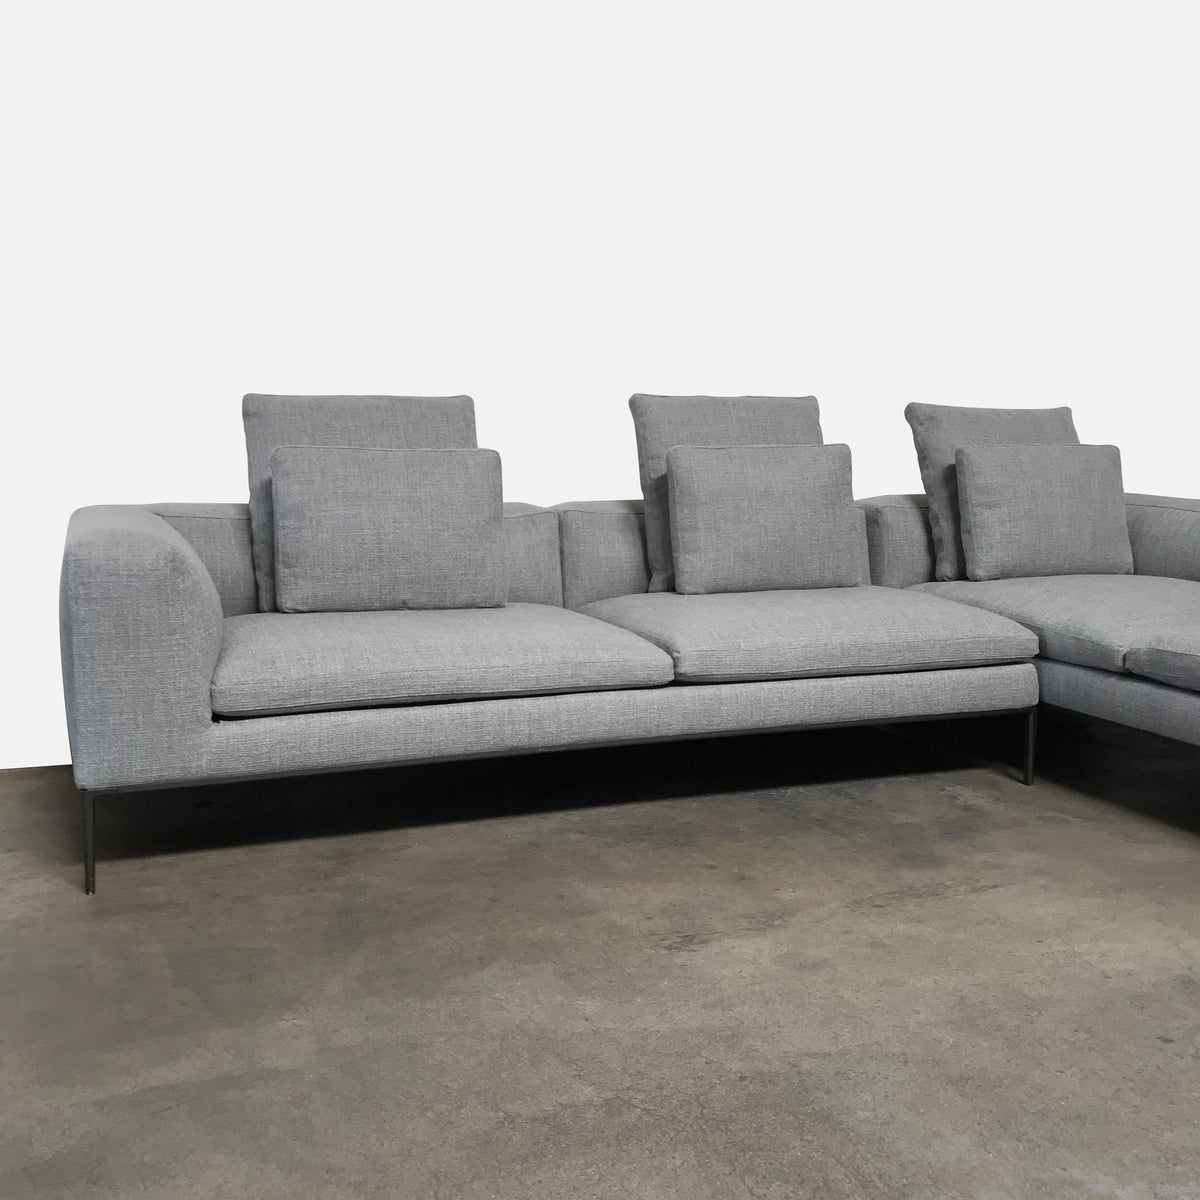 B&B Italia Gray Elio fabric Michel Sectional by Antonio Citterio